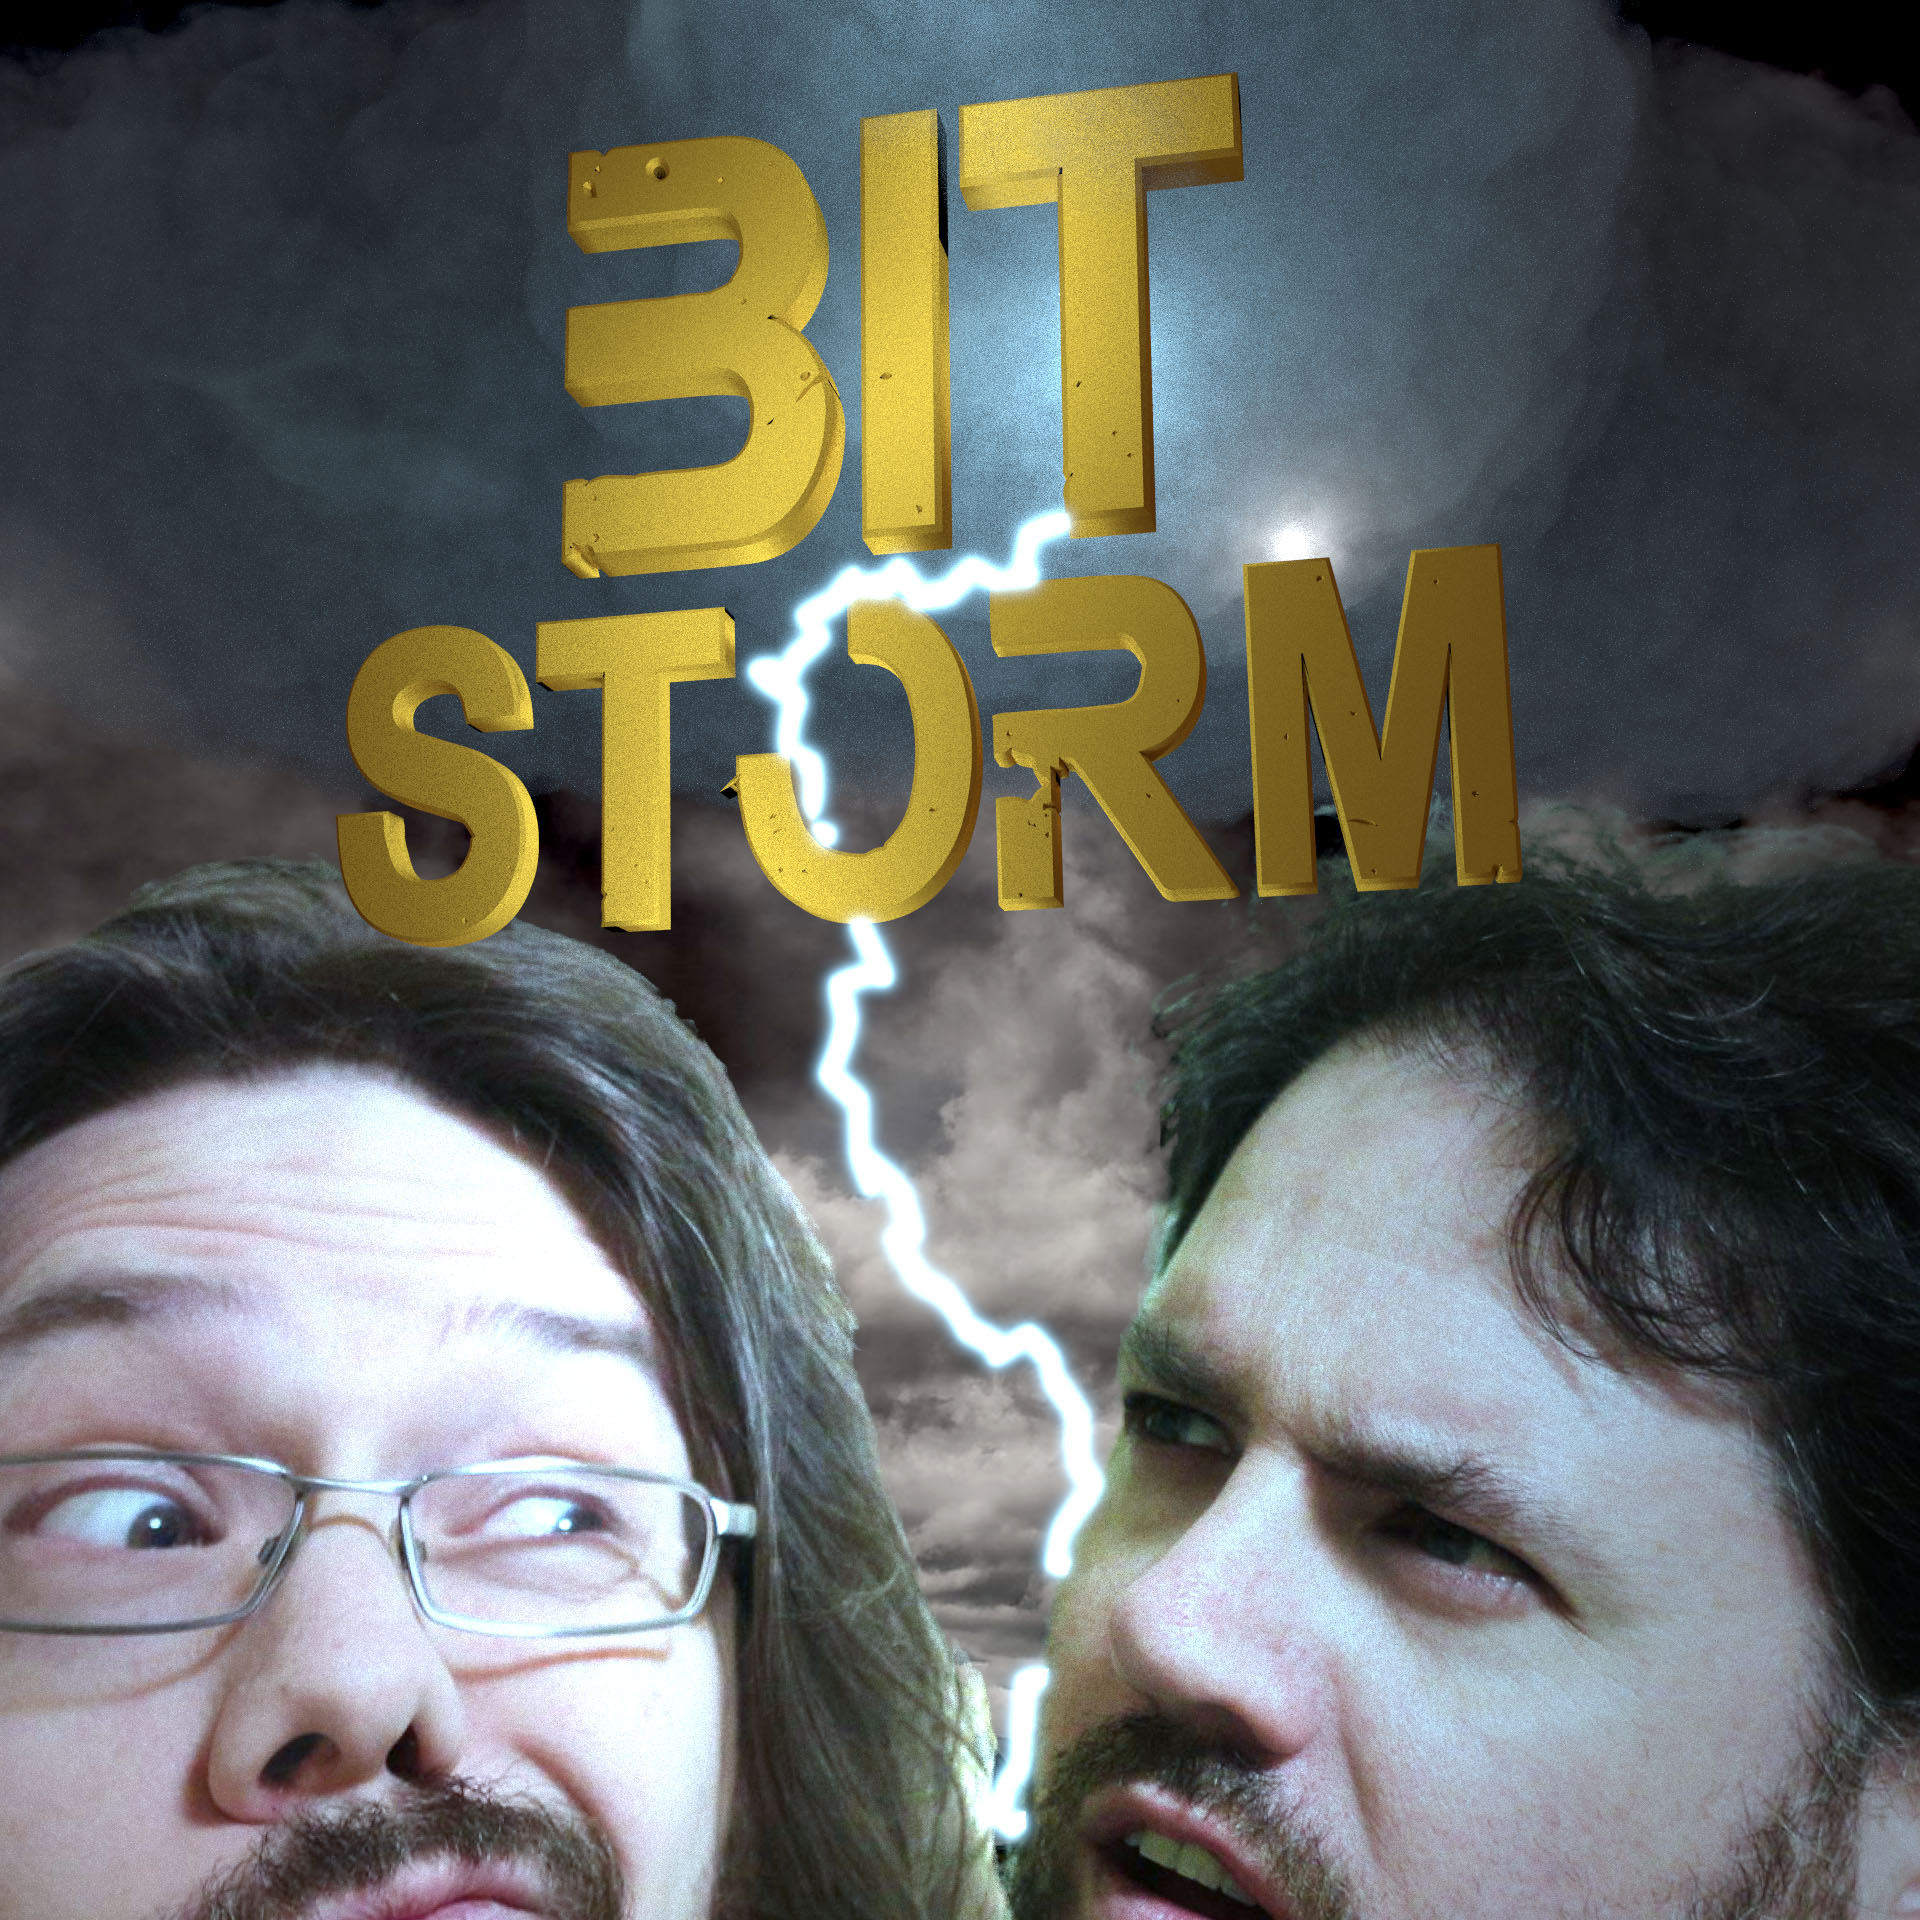 """Fresh update on """"tonight"""" discussed on Bit Storm"""